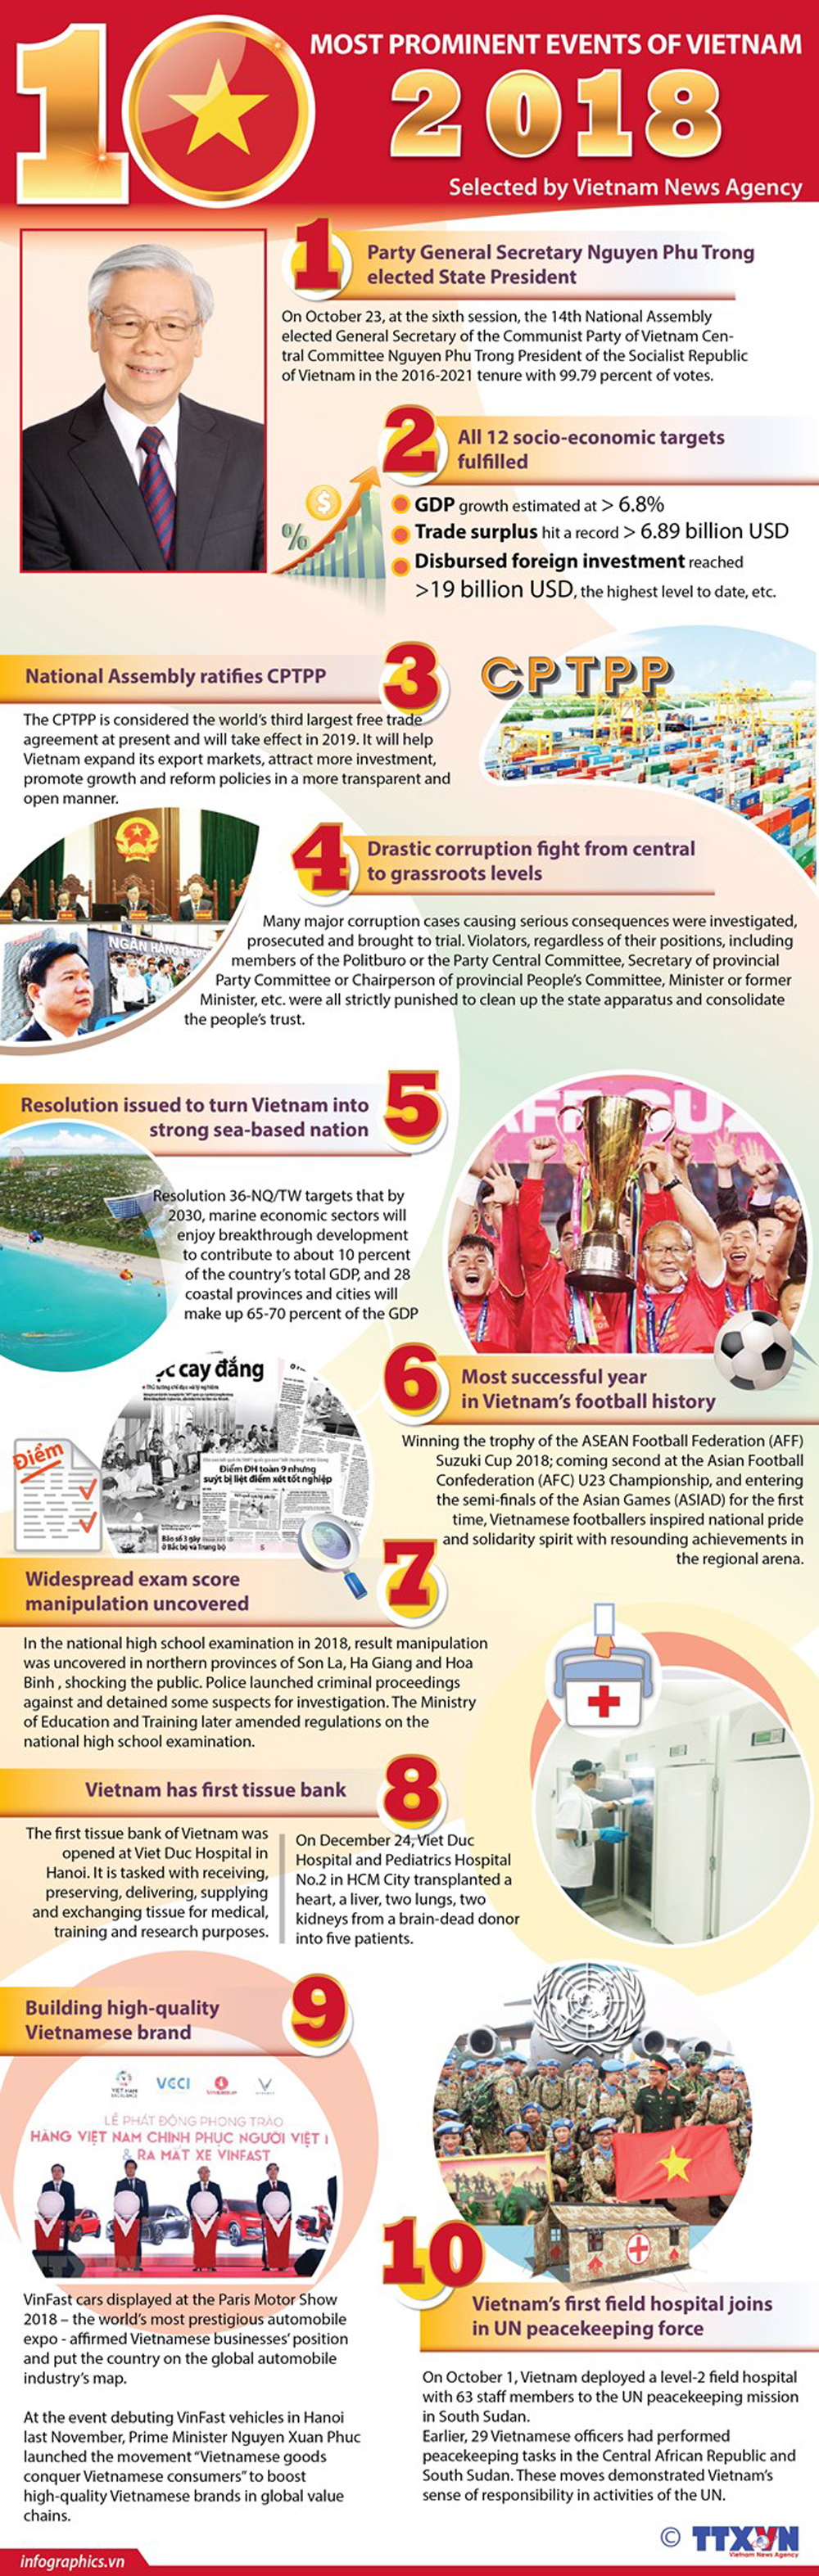 Top 10 events, Vietnam, 2018, most prominent events, domestic events,  Party General Secretary, State President Nguyen Phu Trong, CPTPP, wrongdoings, corruption fighting in Vietnam